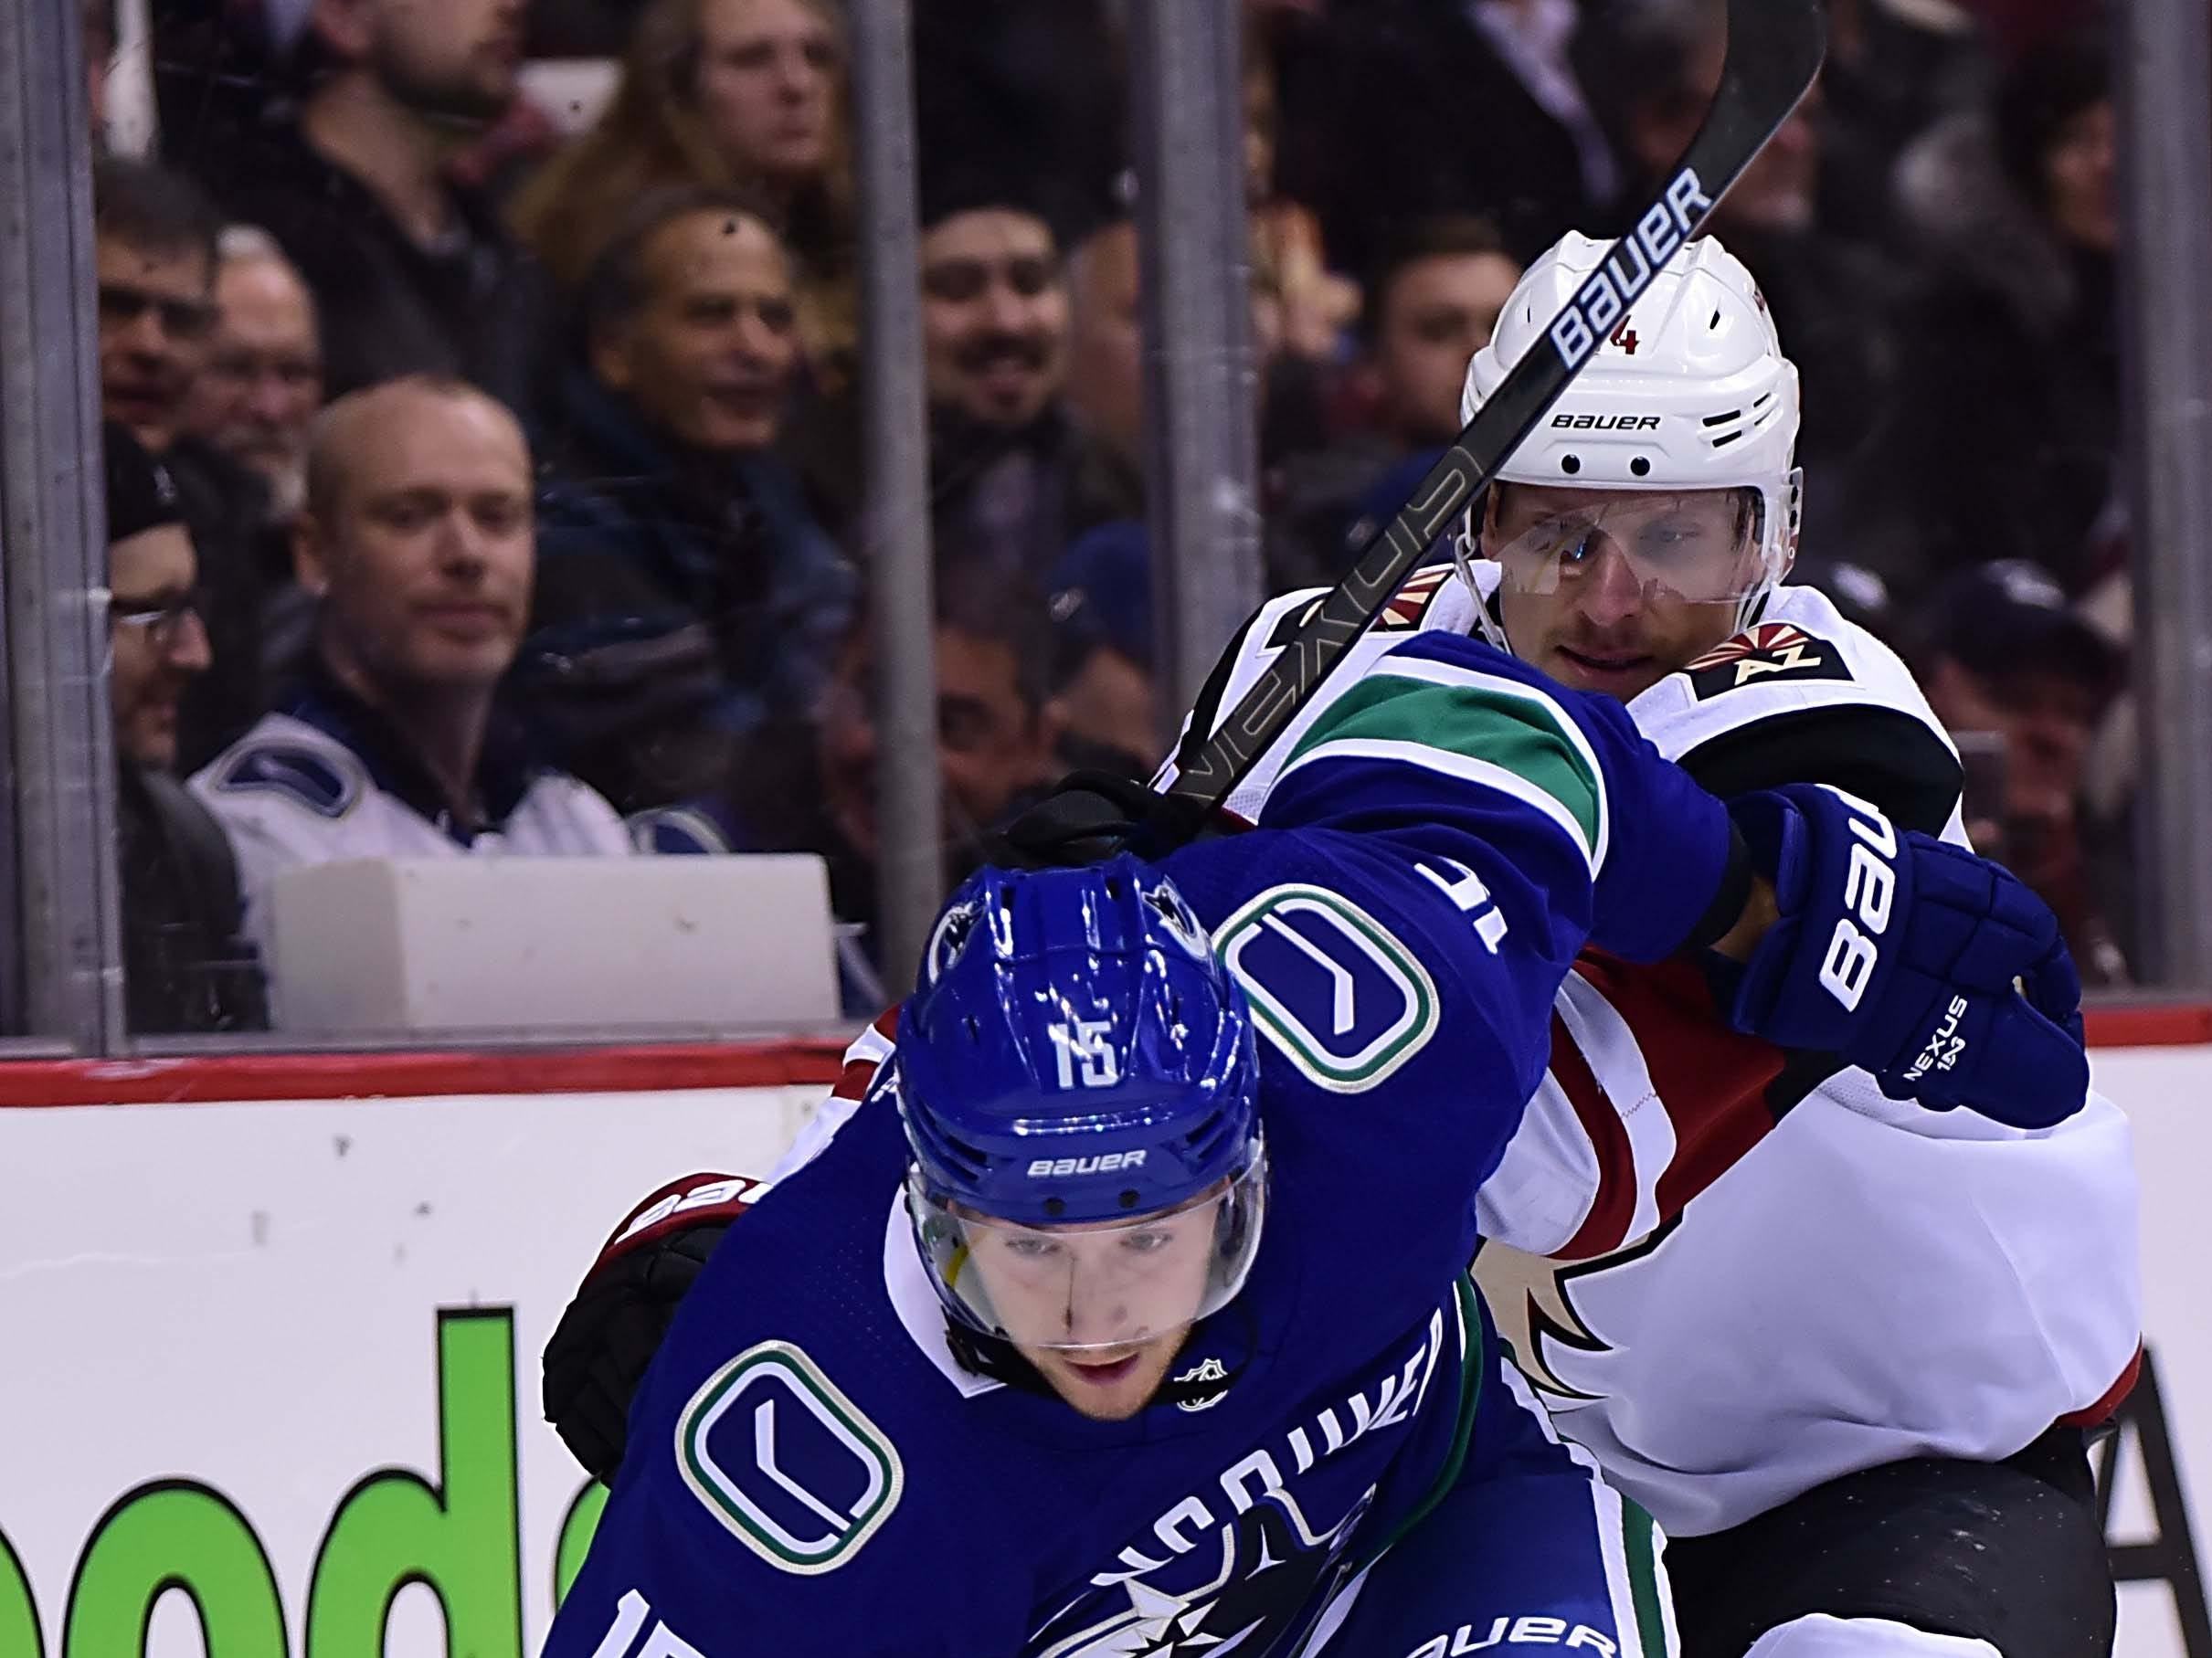 Feb 21, 2019; Vancouver, British Columbia, CAN; Arizona Coyotes forward Richard Panik (14) battles for the puck against Vancouver Canucks forward Ryan Spooner (15) during the first period at Rogers Arena. Mandatory Credit: Anne-Marie Sorvin-USA TODAY Sports